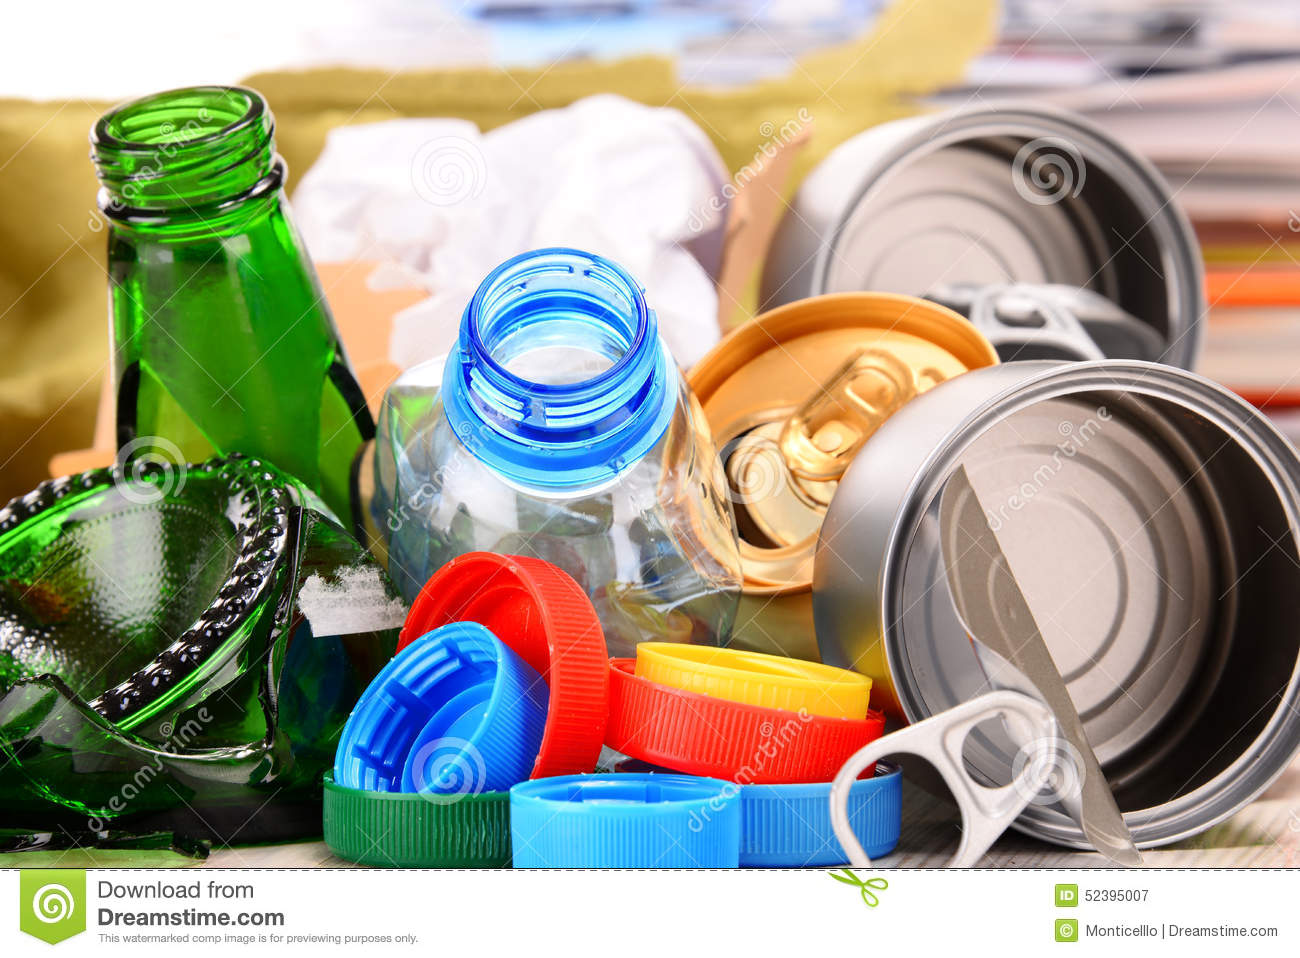 how to tell recyclable plastic